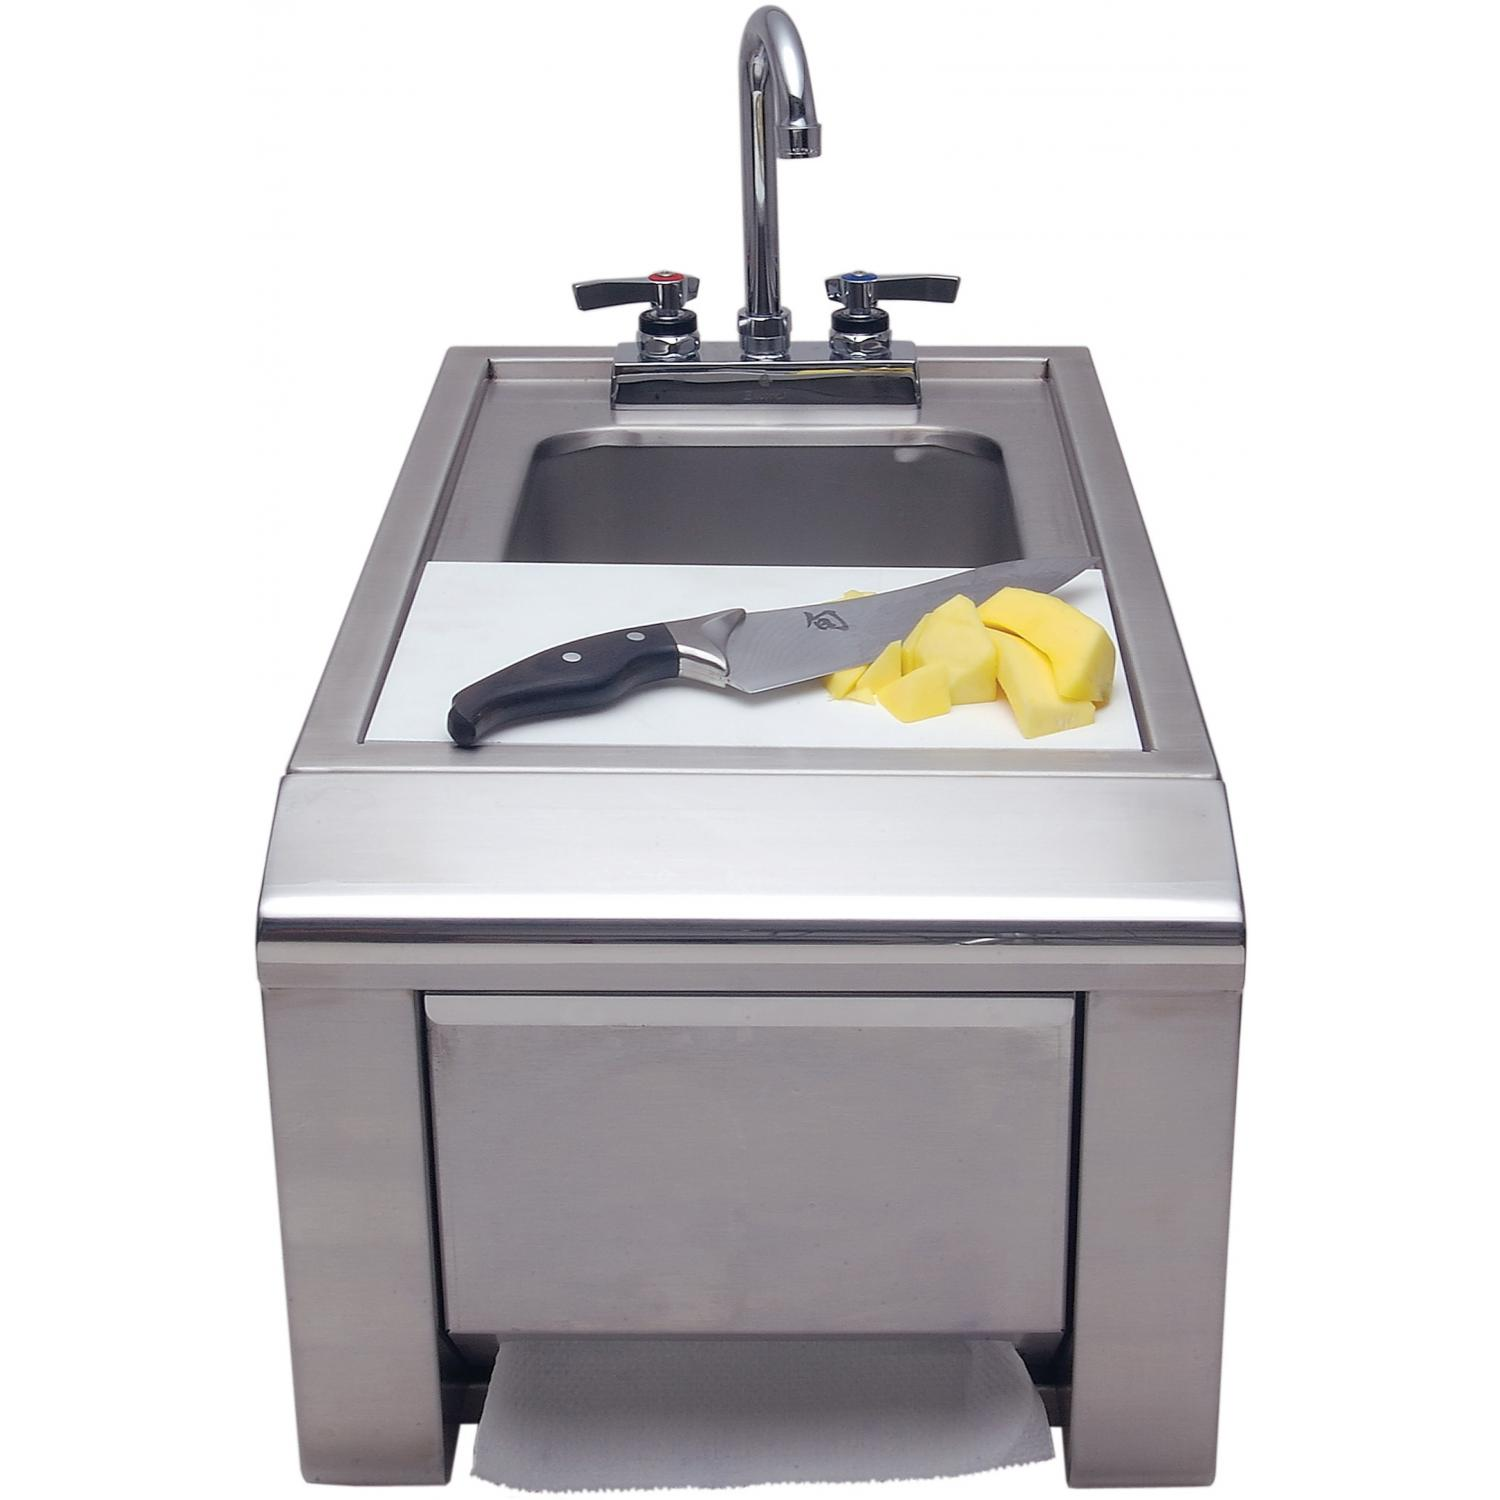 Picture of Alfresco Prep And Wash Sink With Towel Dispenser